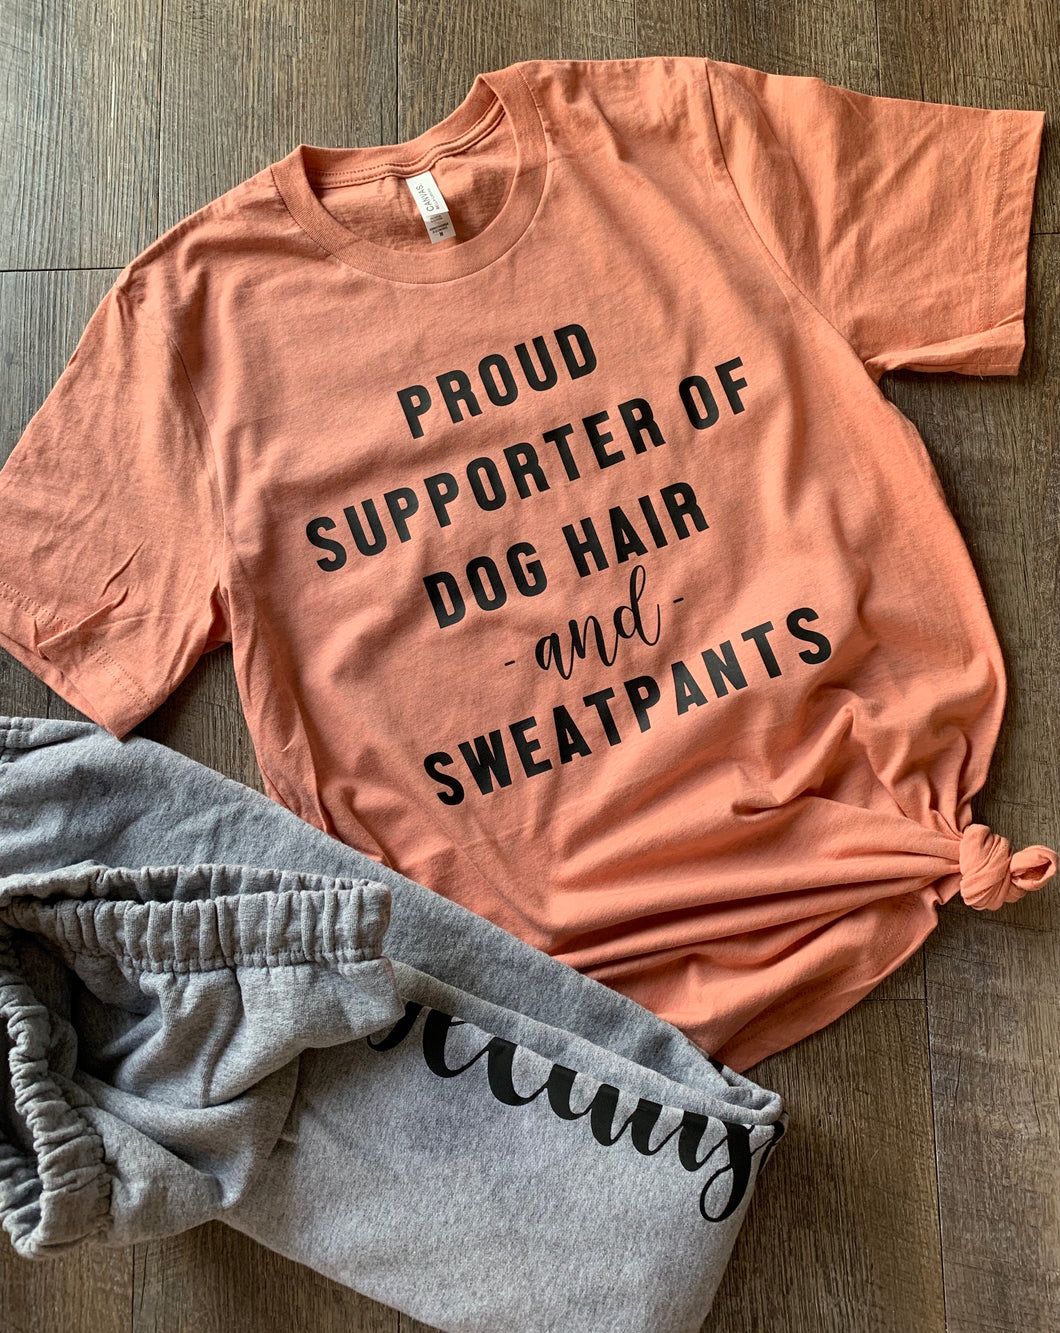 Proud supporter of dog hair and sweatpants. Funny dog mom graphic tee. Coral sunset. - Mavictoria Designs Hot Press Express